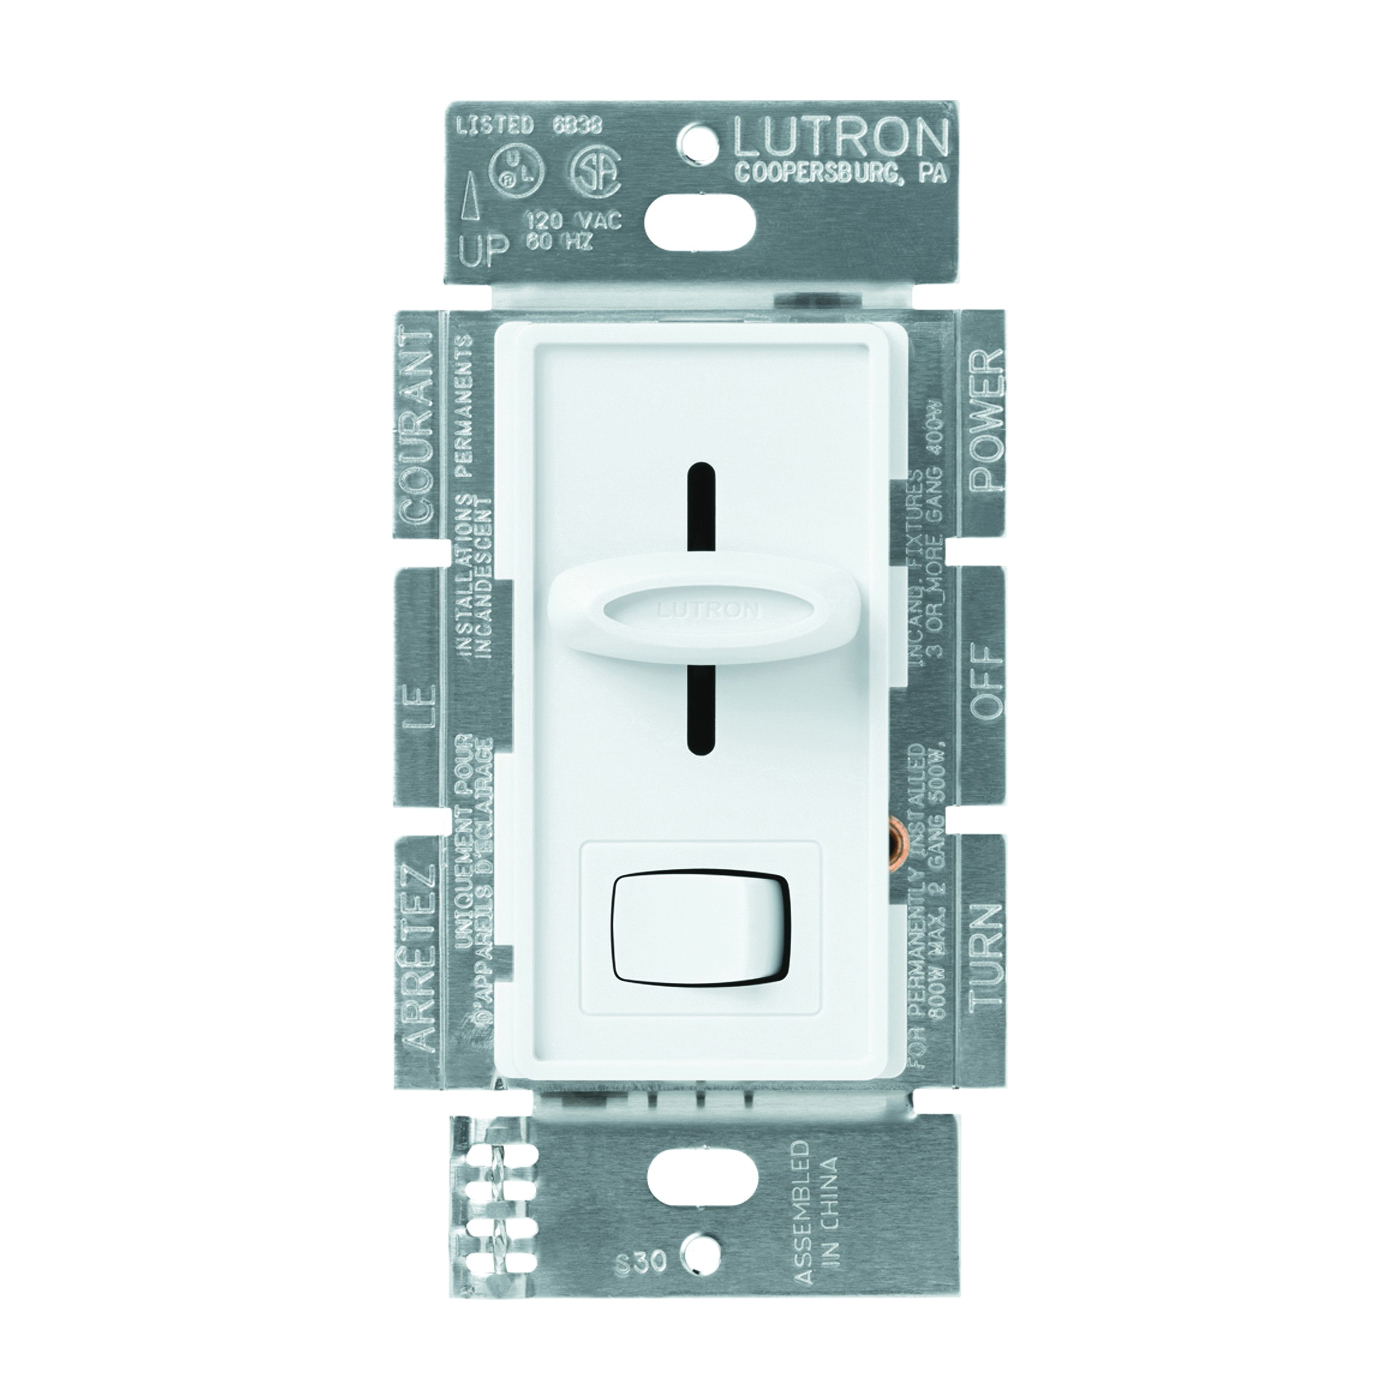 Picture of Lutron Skylark S-603PGH-WH Dimmer, 5 A, 120 V, 600 W, Halogen, Incandescent Lamp, 3-Way, White